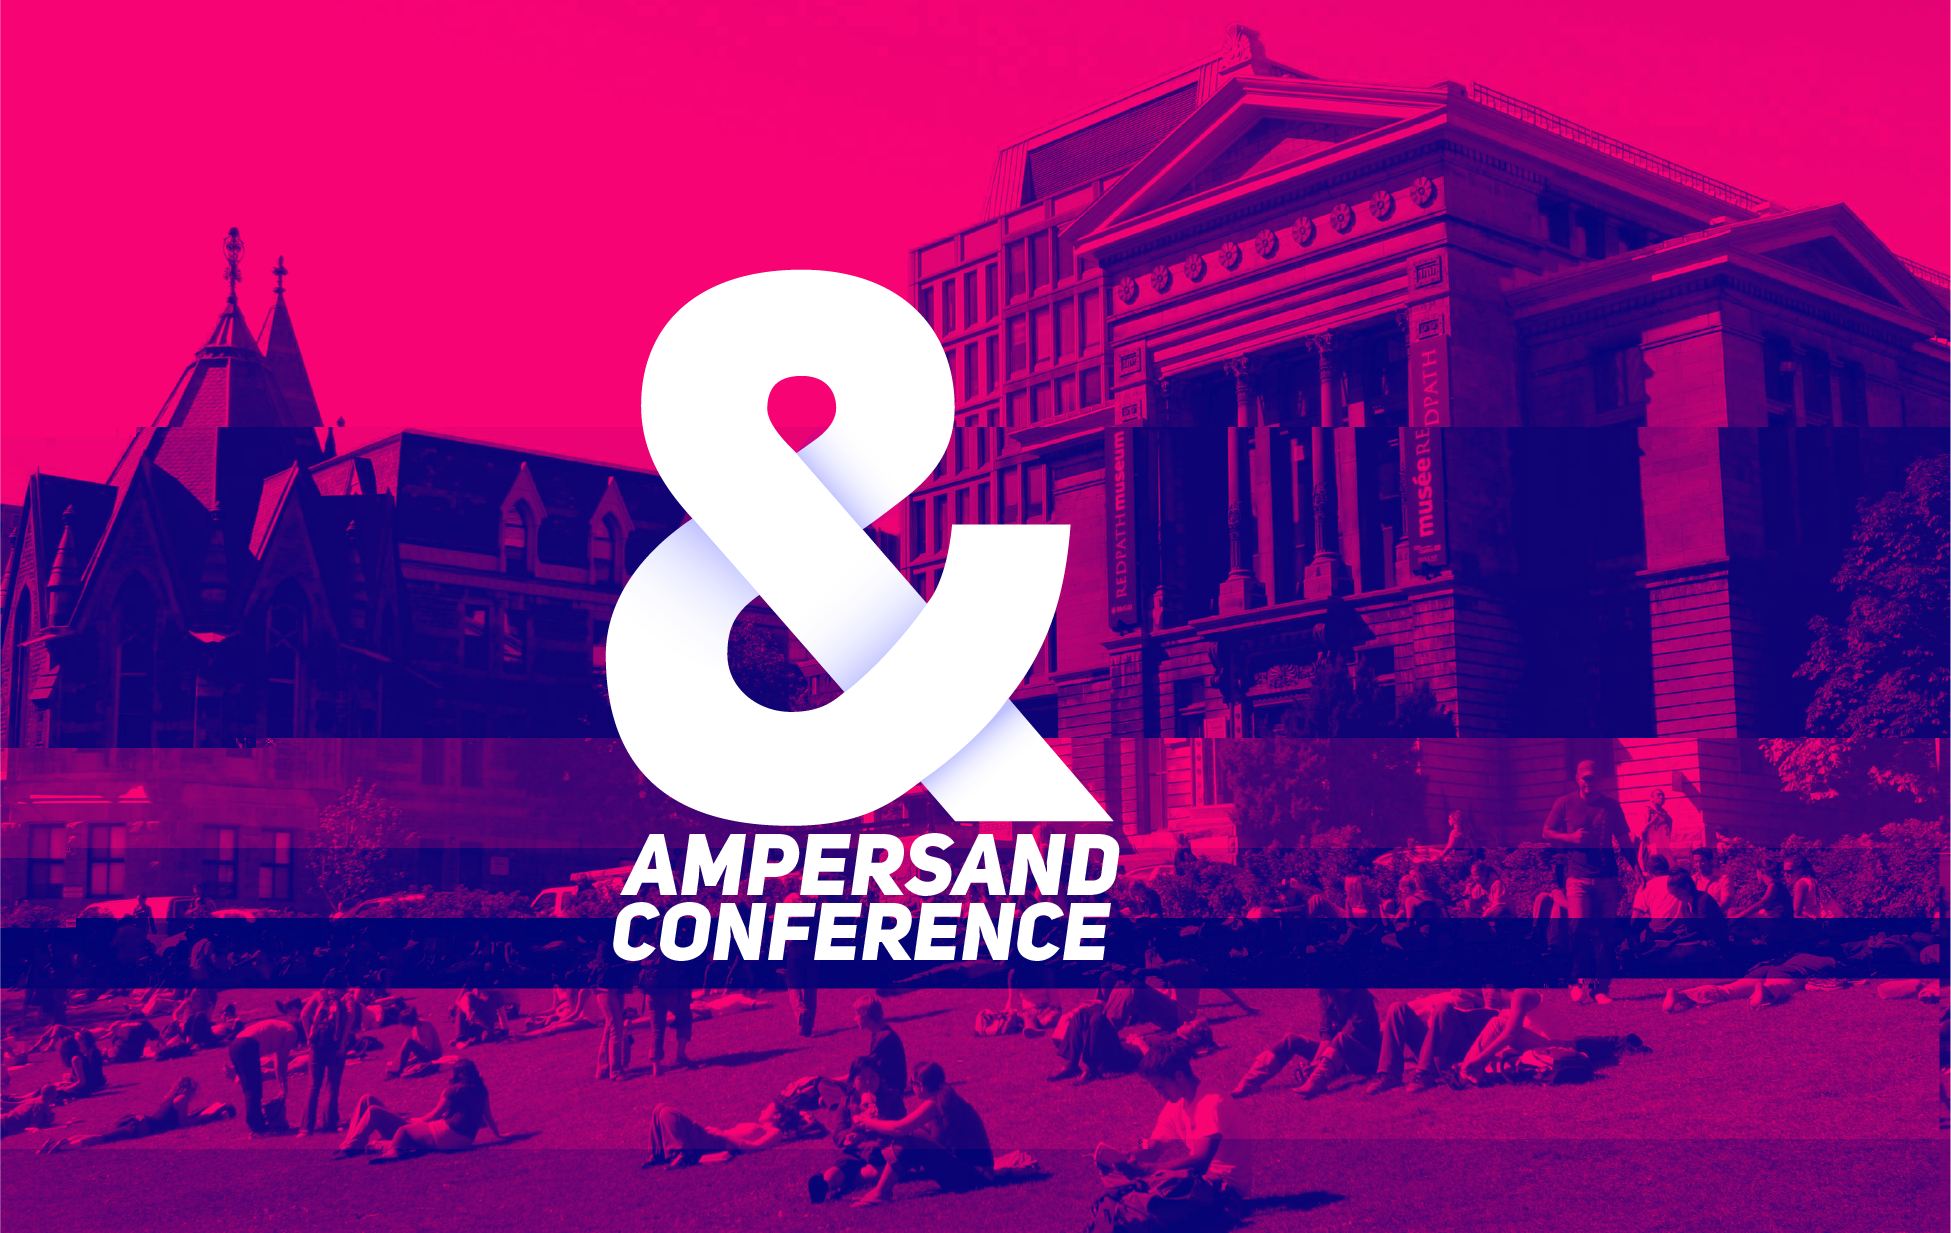 AMPERSAND CONFERENCE 2016 - BRANDING // March 2016